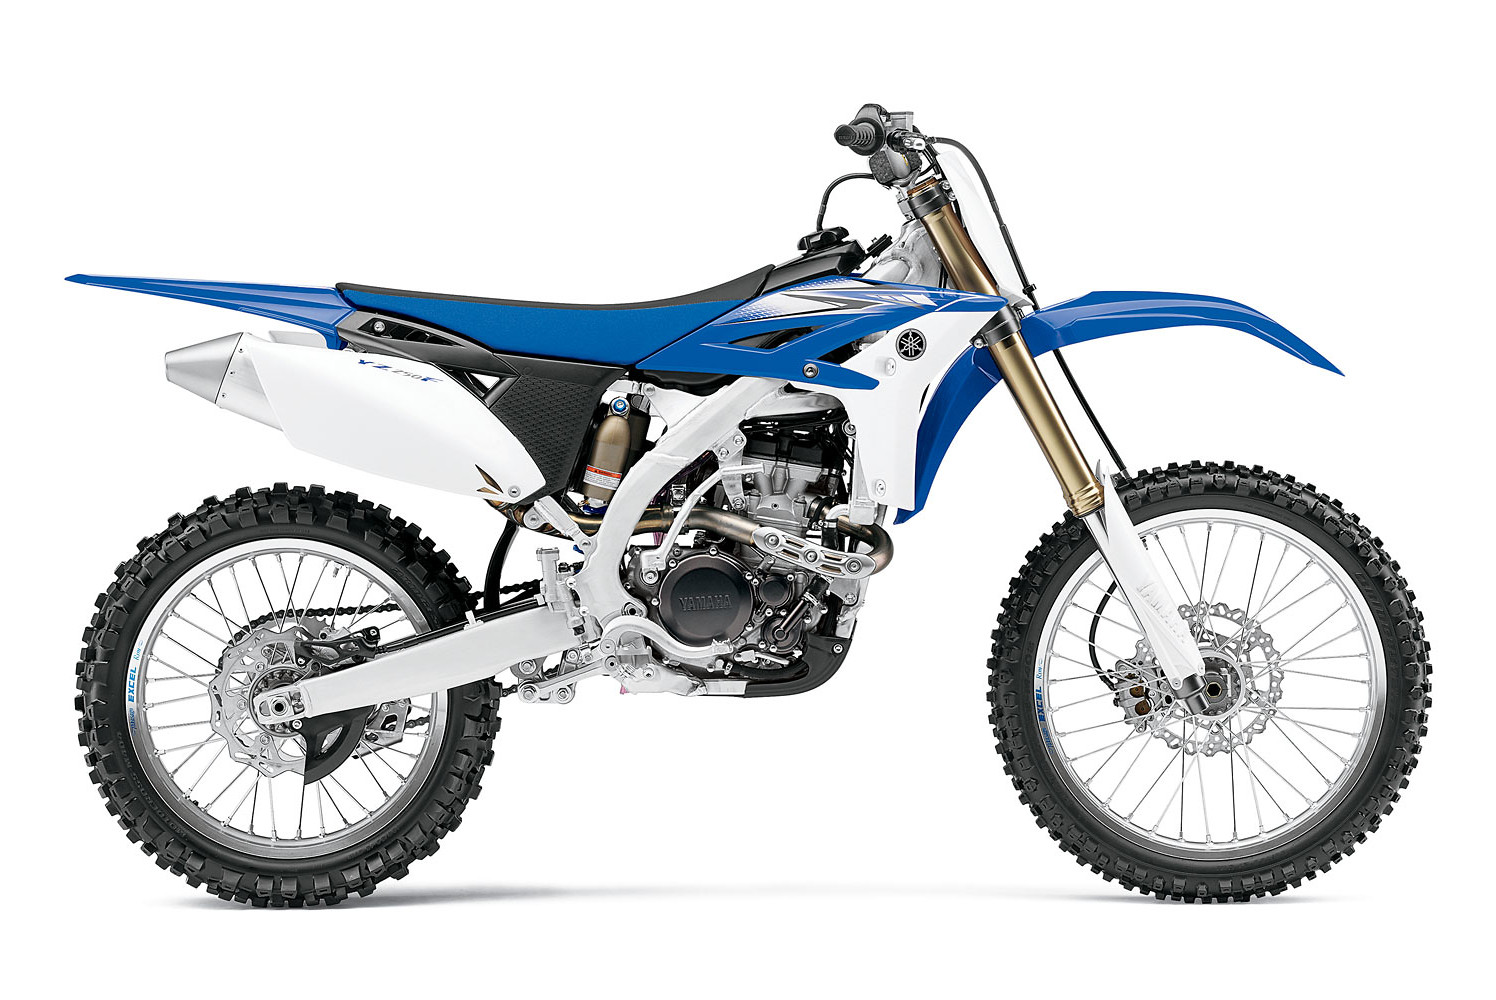 2011 yamaha yz250f reviews comparisons specs for Yamaha mini dirt bikes